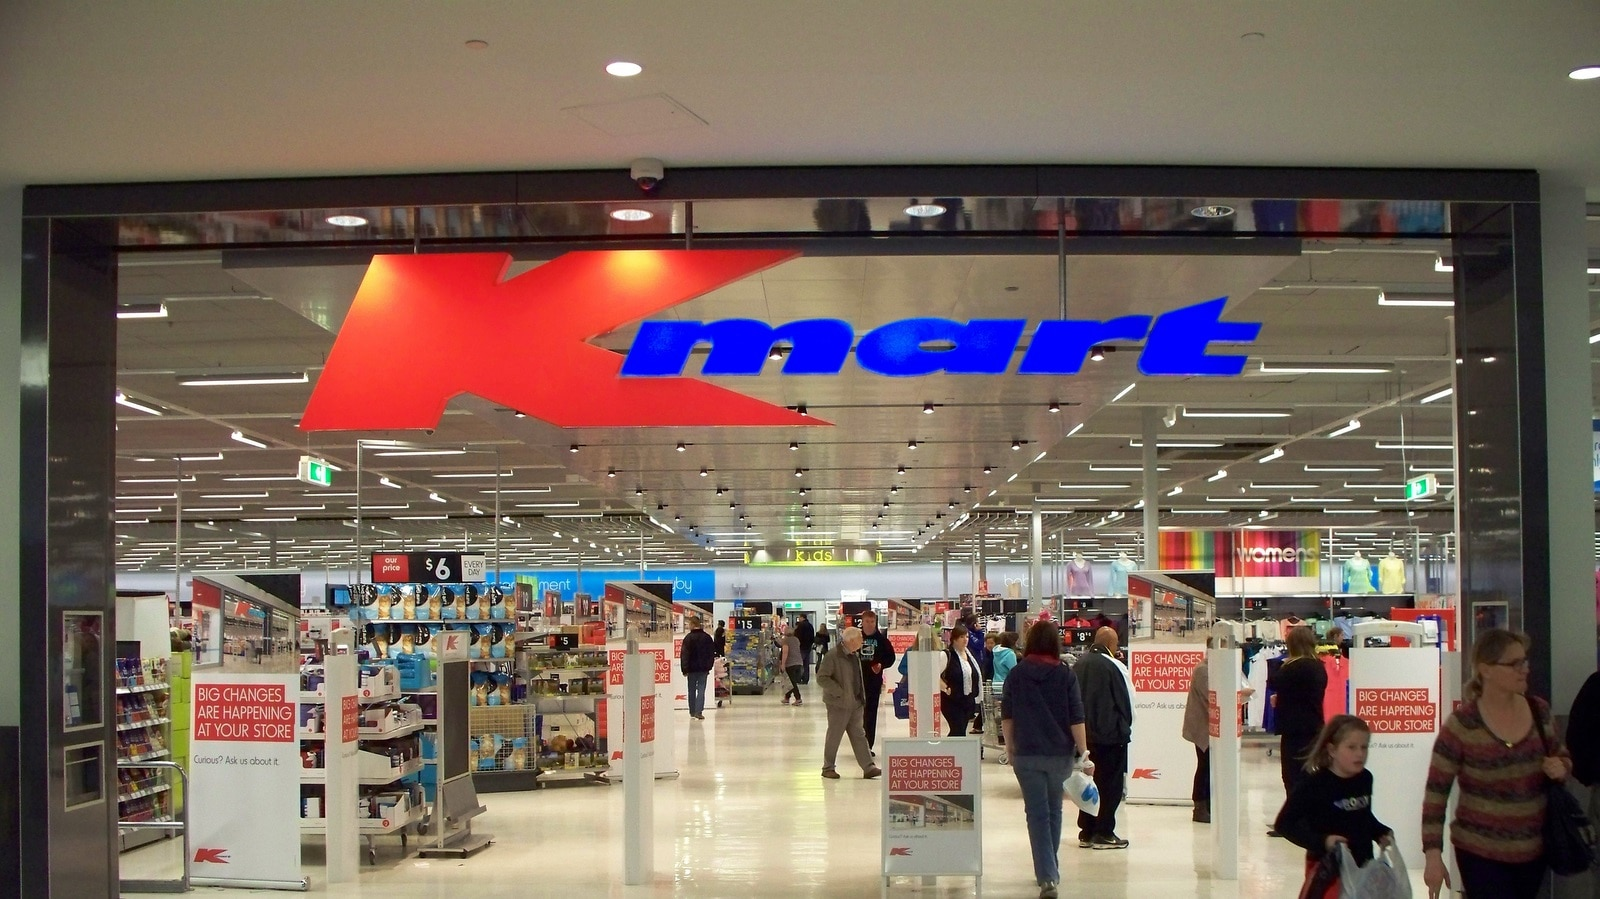 Best And Less Stores Melbourne The Kmart Item Rated Higher By Choice Than Luxury Brands Sbs